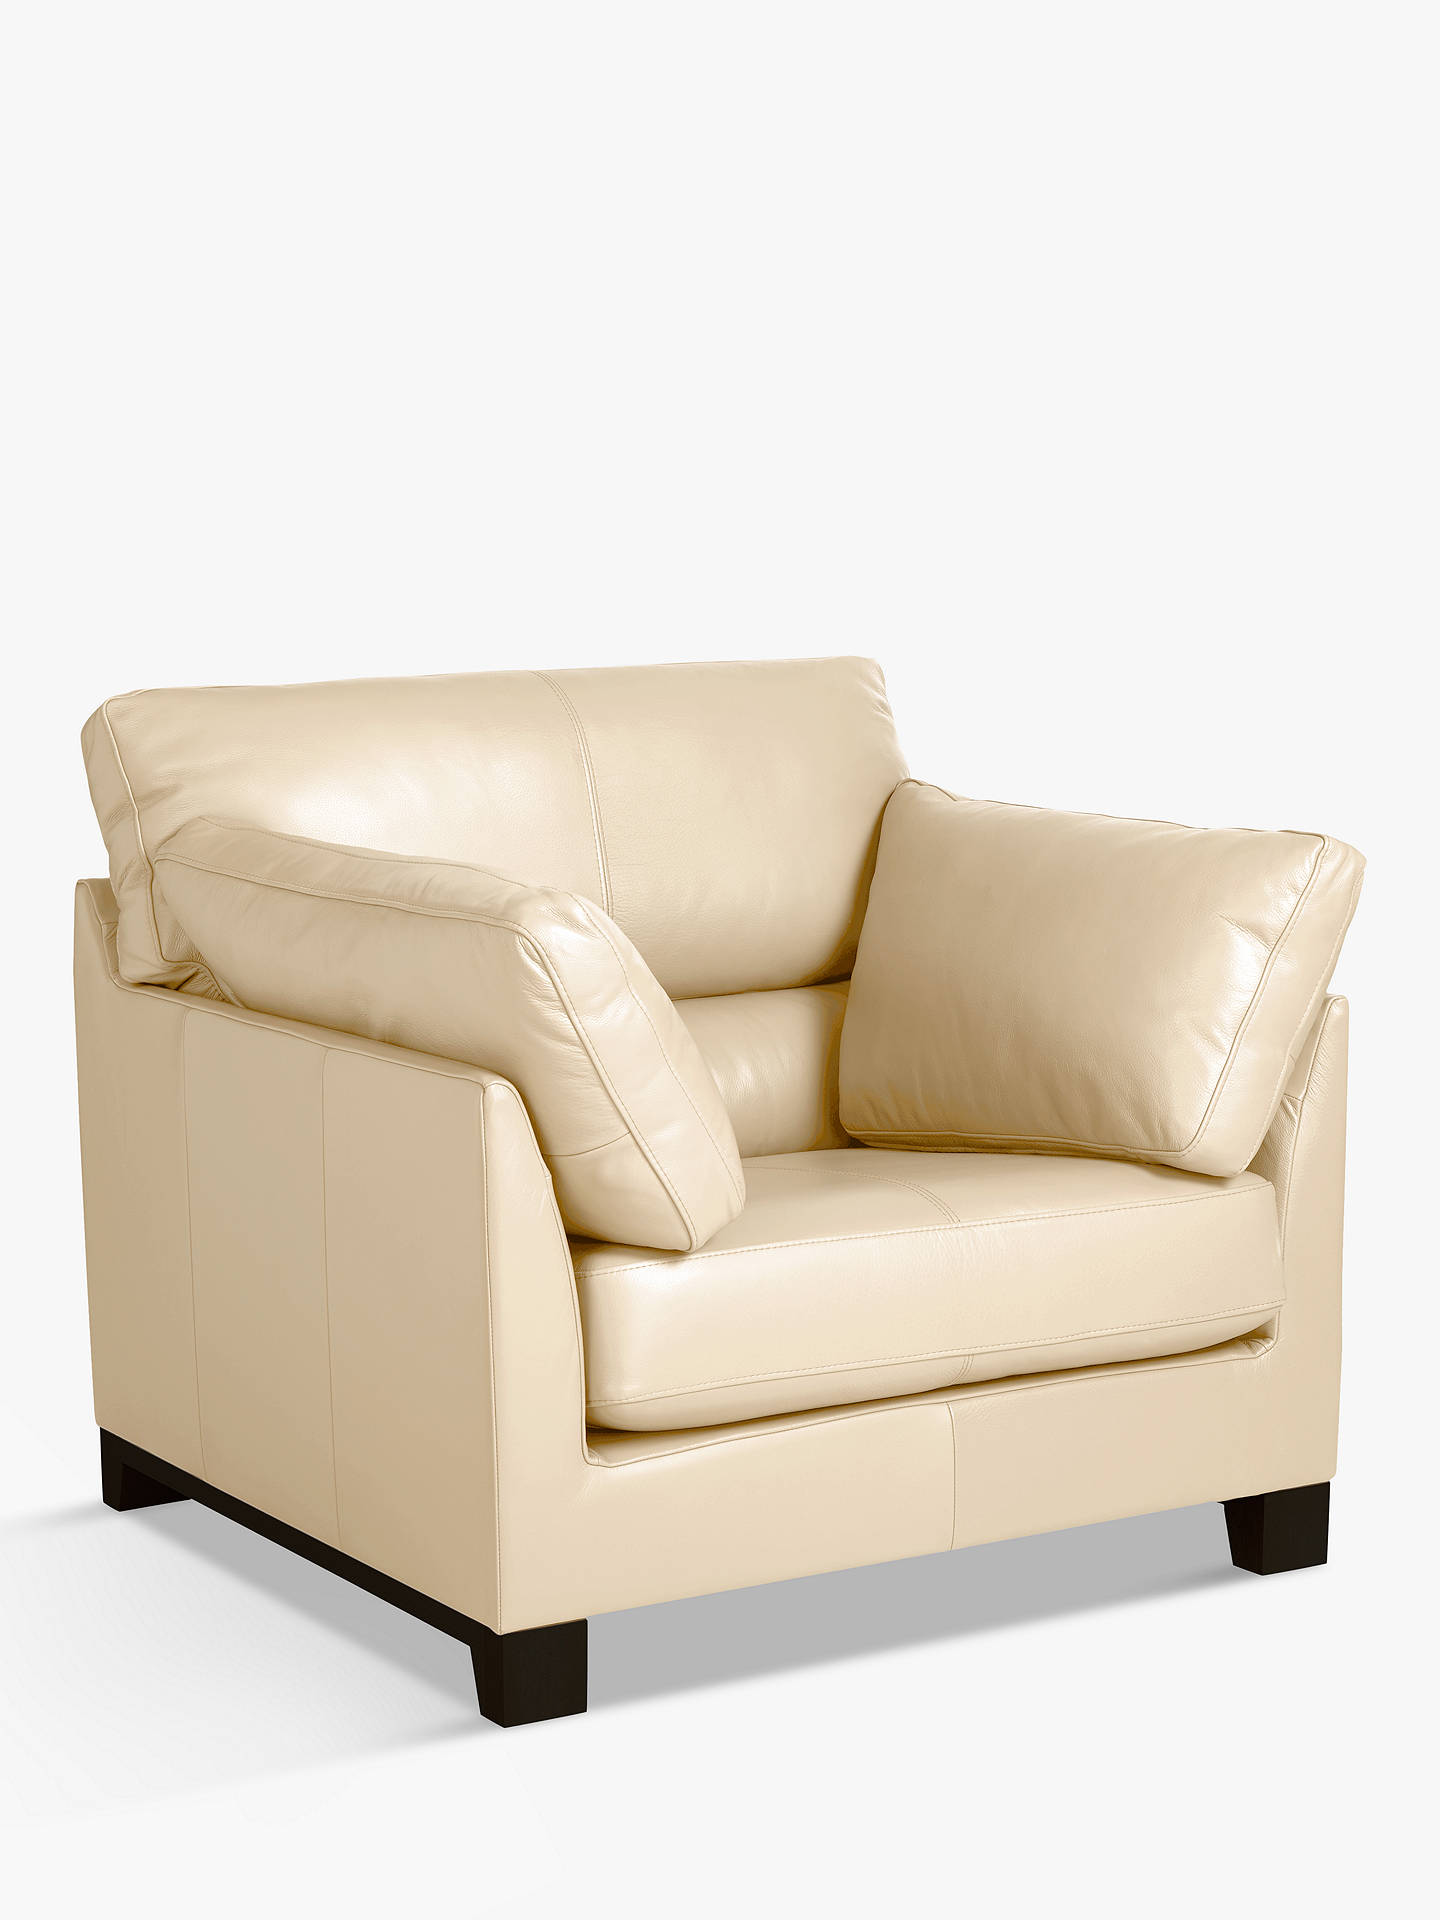 Buy John Lewis & Partners Ikon High Back Leather Armchair, Dark Leg, Contempo Ivory Online at johnlewis.com